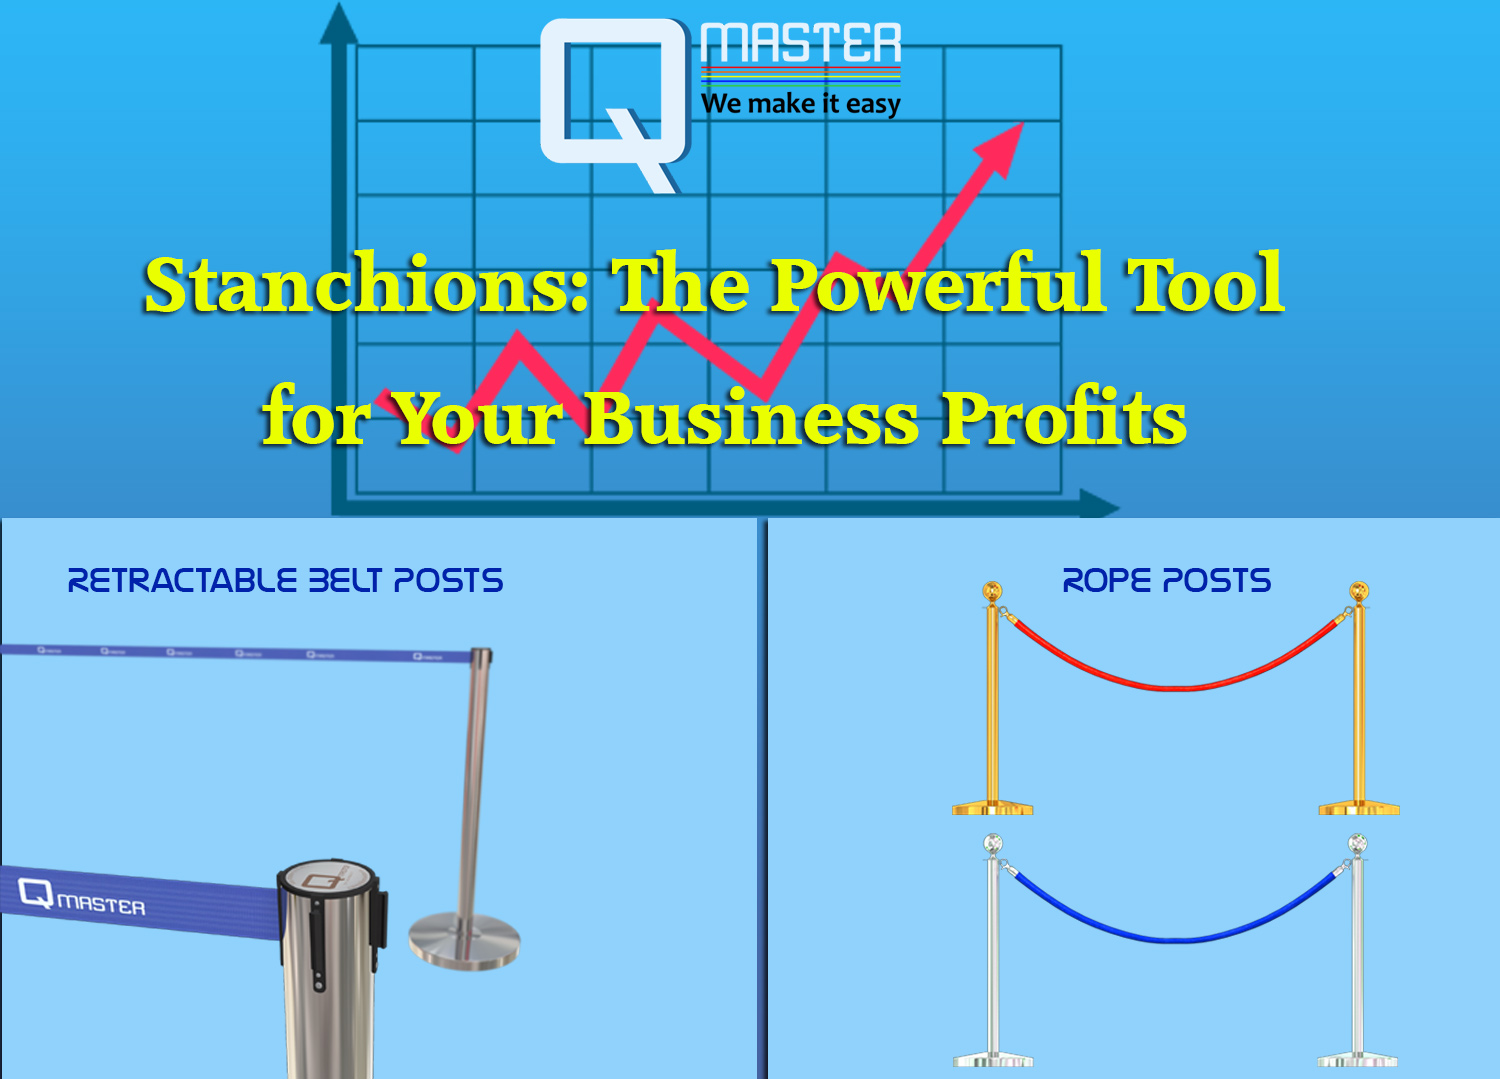 stanchions: the powerful tool for your business profits – qmaster